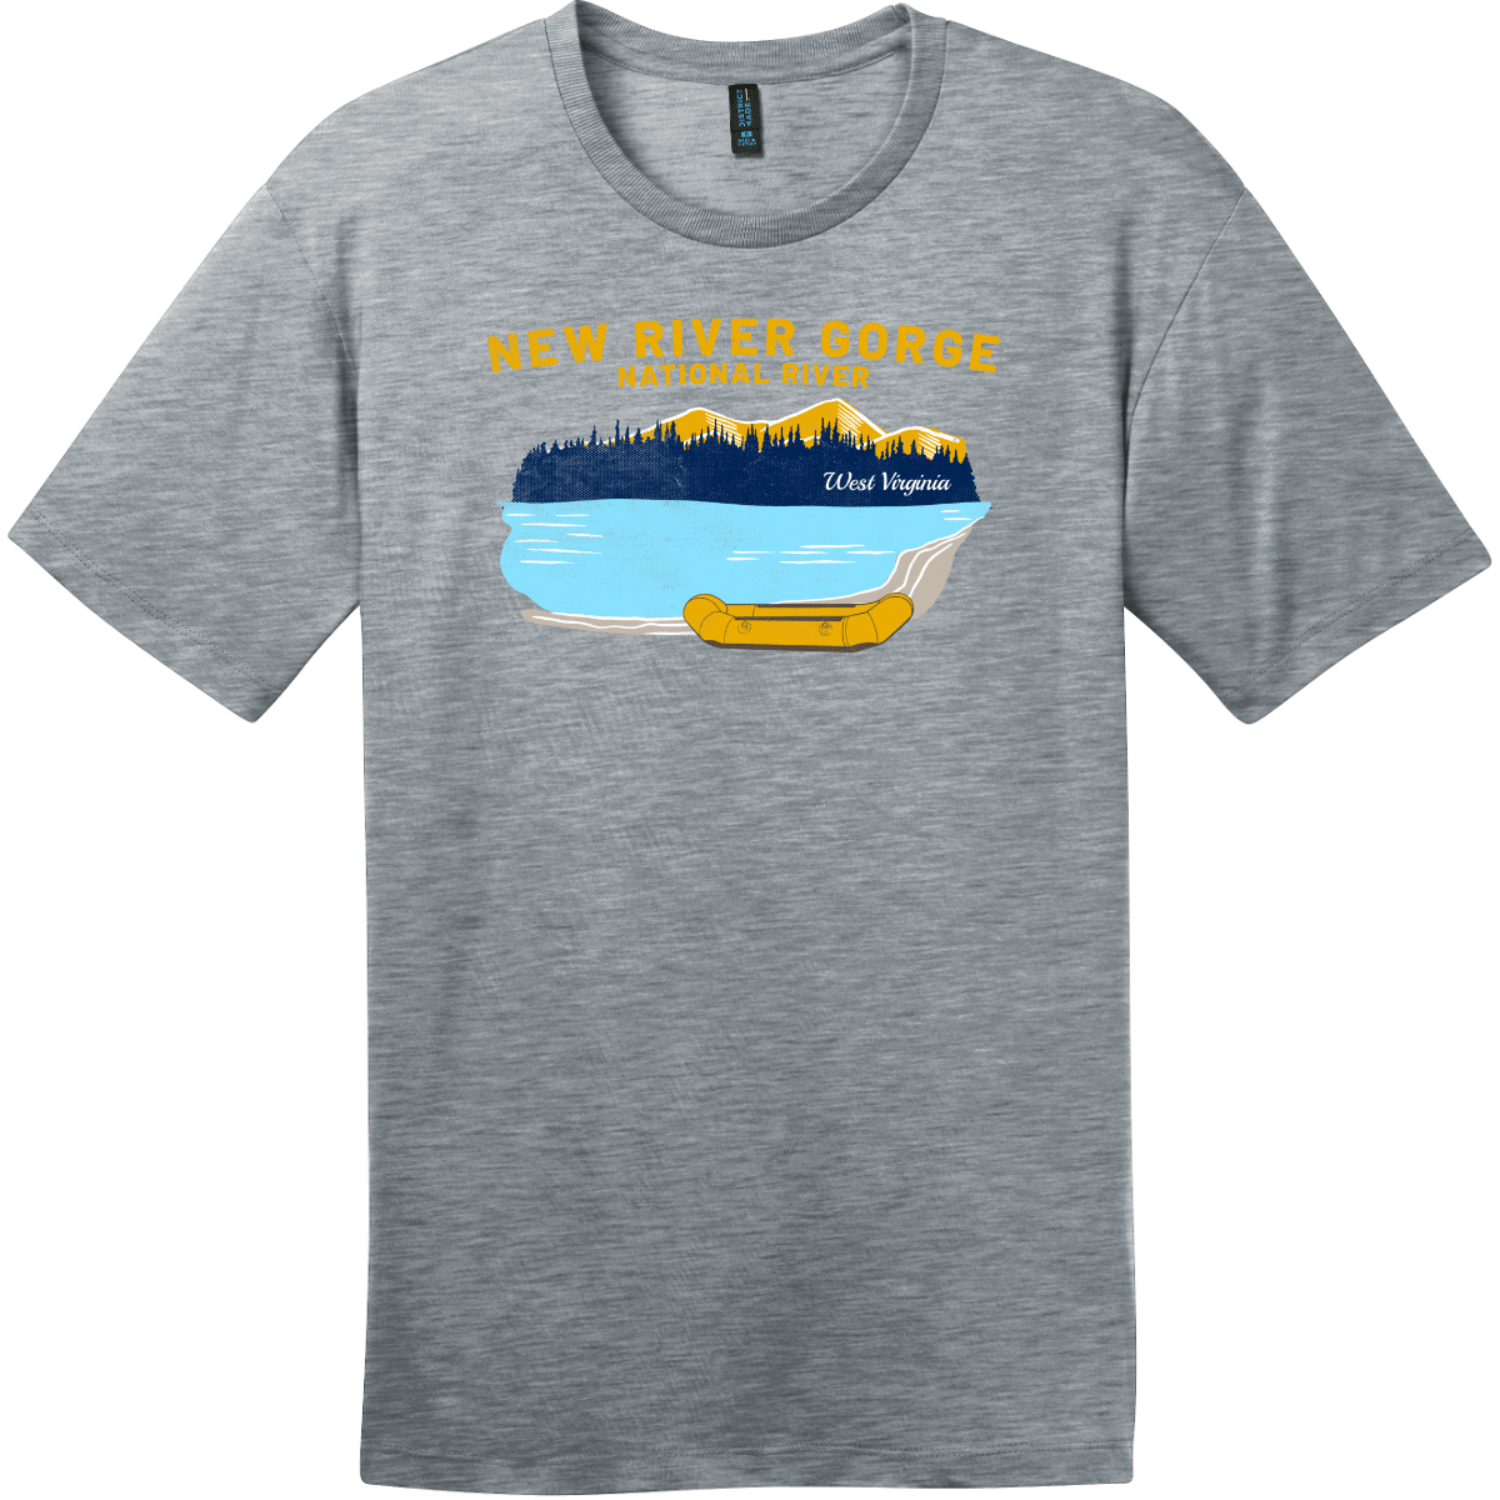 New River Gorge Rafting T-Shirt Heathered Steel District Perfect Weight Tee DT104